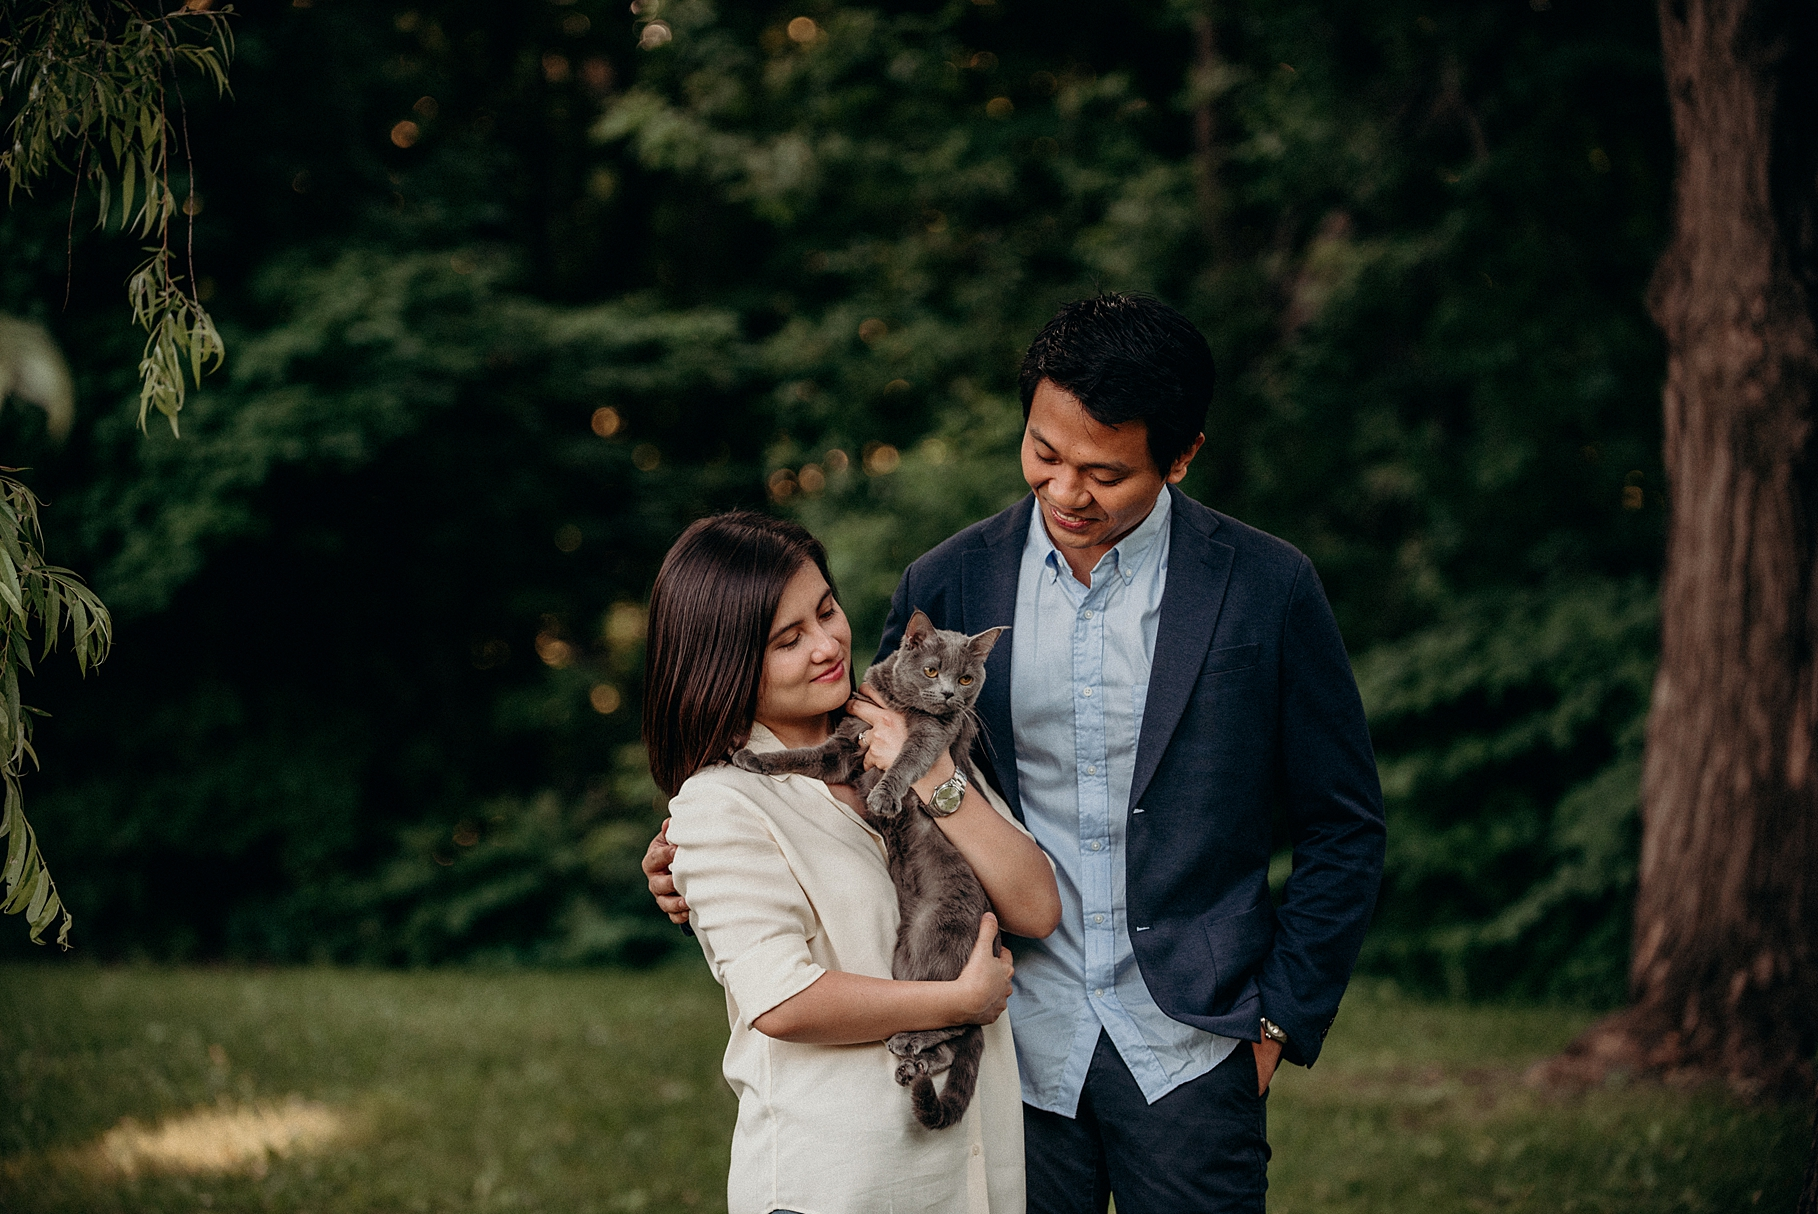 Bringing your Dog or Cat to an engagement session. Mocha Tree Studios Ottawa Toronto Montreal Wedding and Engagement Photographer and Videographer Dark Moody Intimate Authentic Modern Romantic Cinematic Best Candid 4